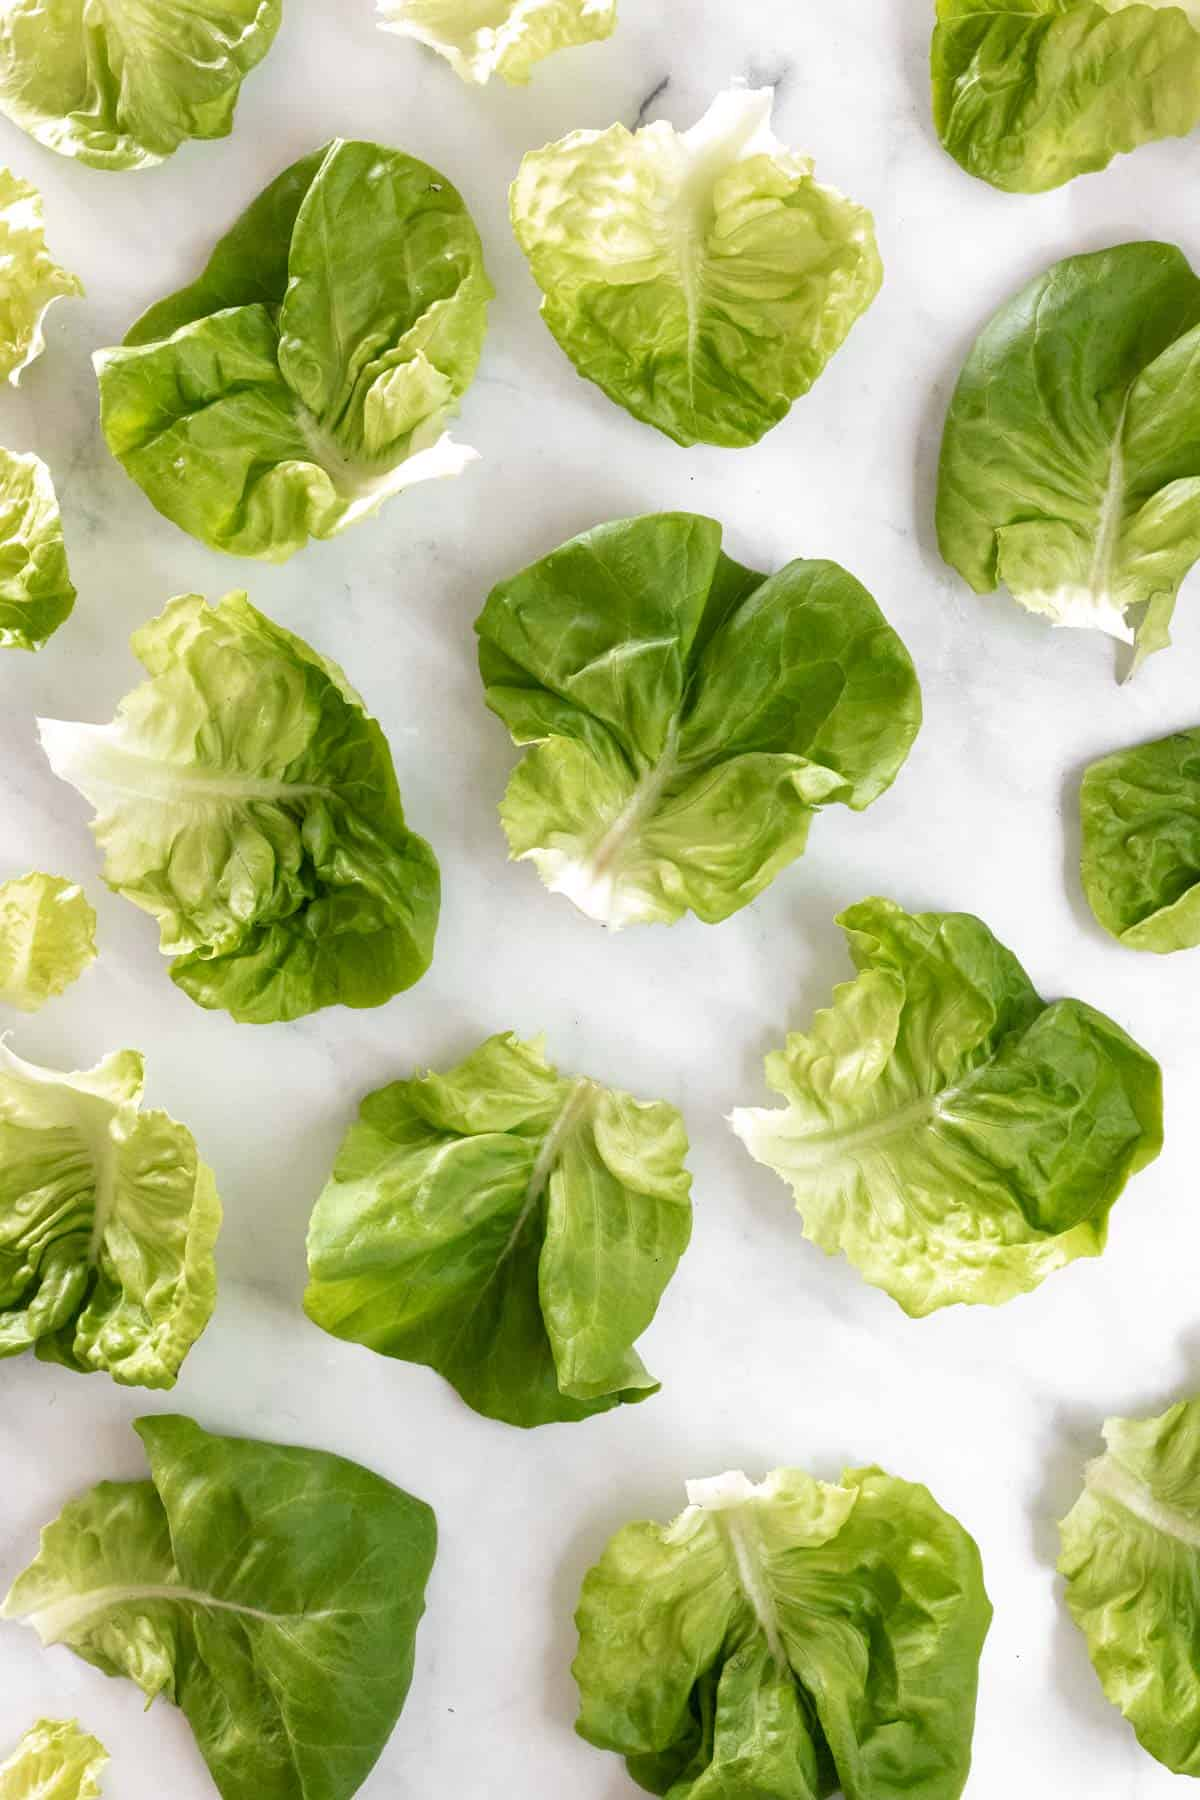 Washed and dried lettuce cups on a white backdrop.